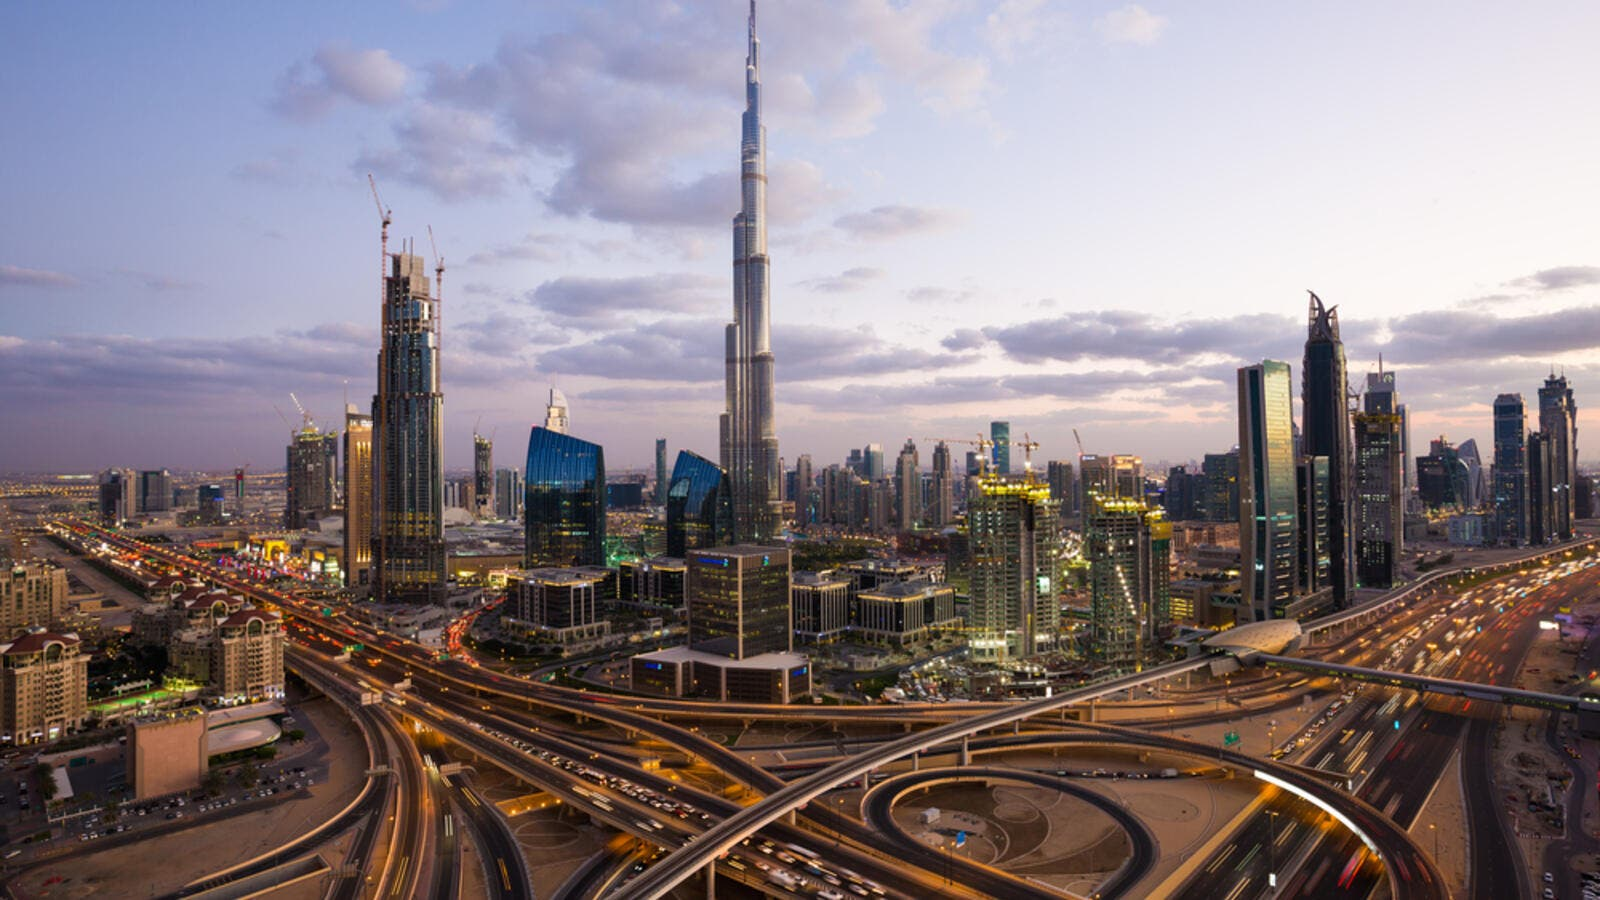 In 2015 2,000 millionaires relocated to Dubai, and that trend is expected to continue this year. (Shutterstock)